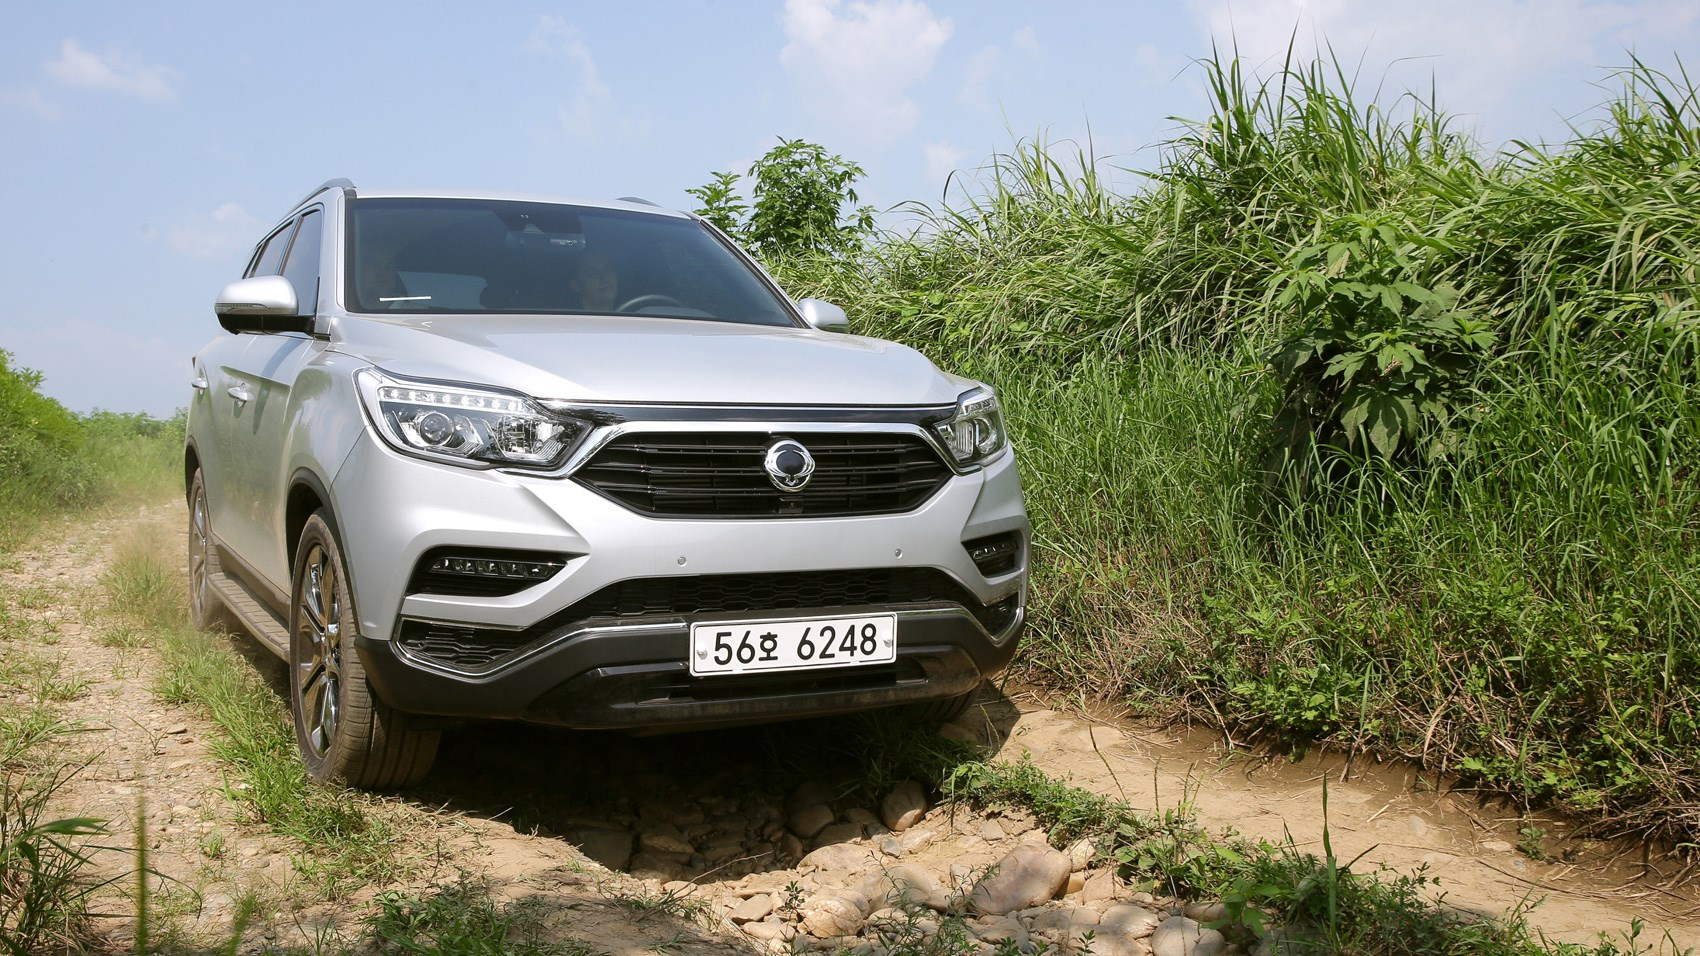 ssangyong rexton suv 2017 review by car magazine. Black Bedroom Furniture Sets. Home Design Ideas